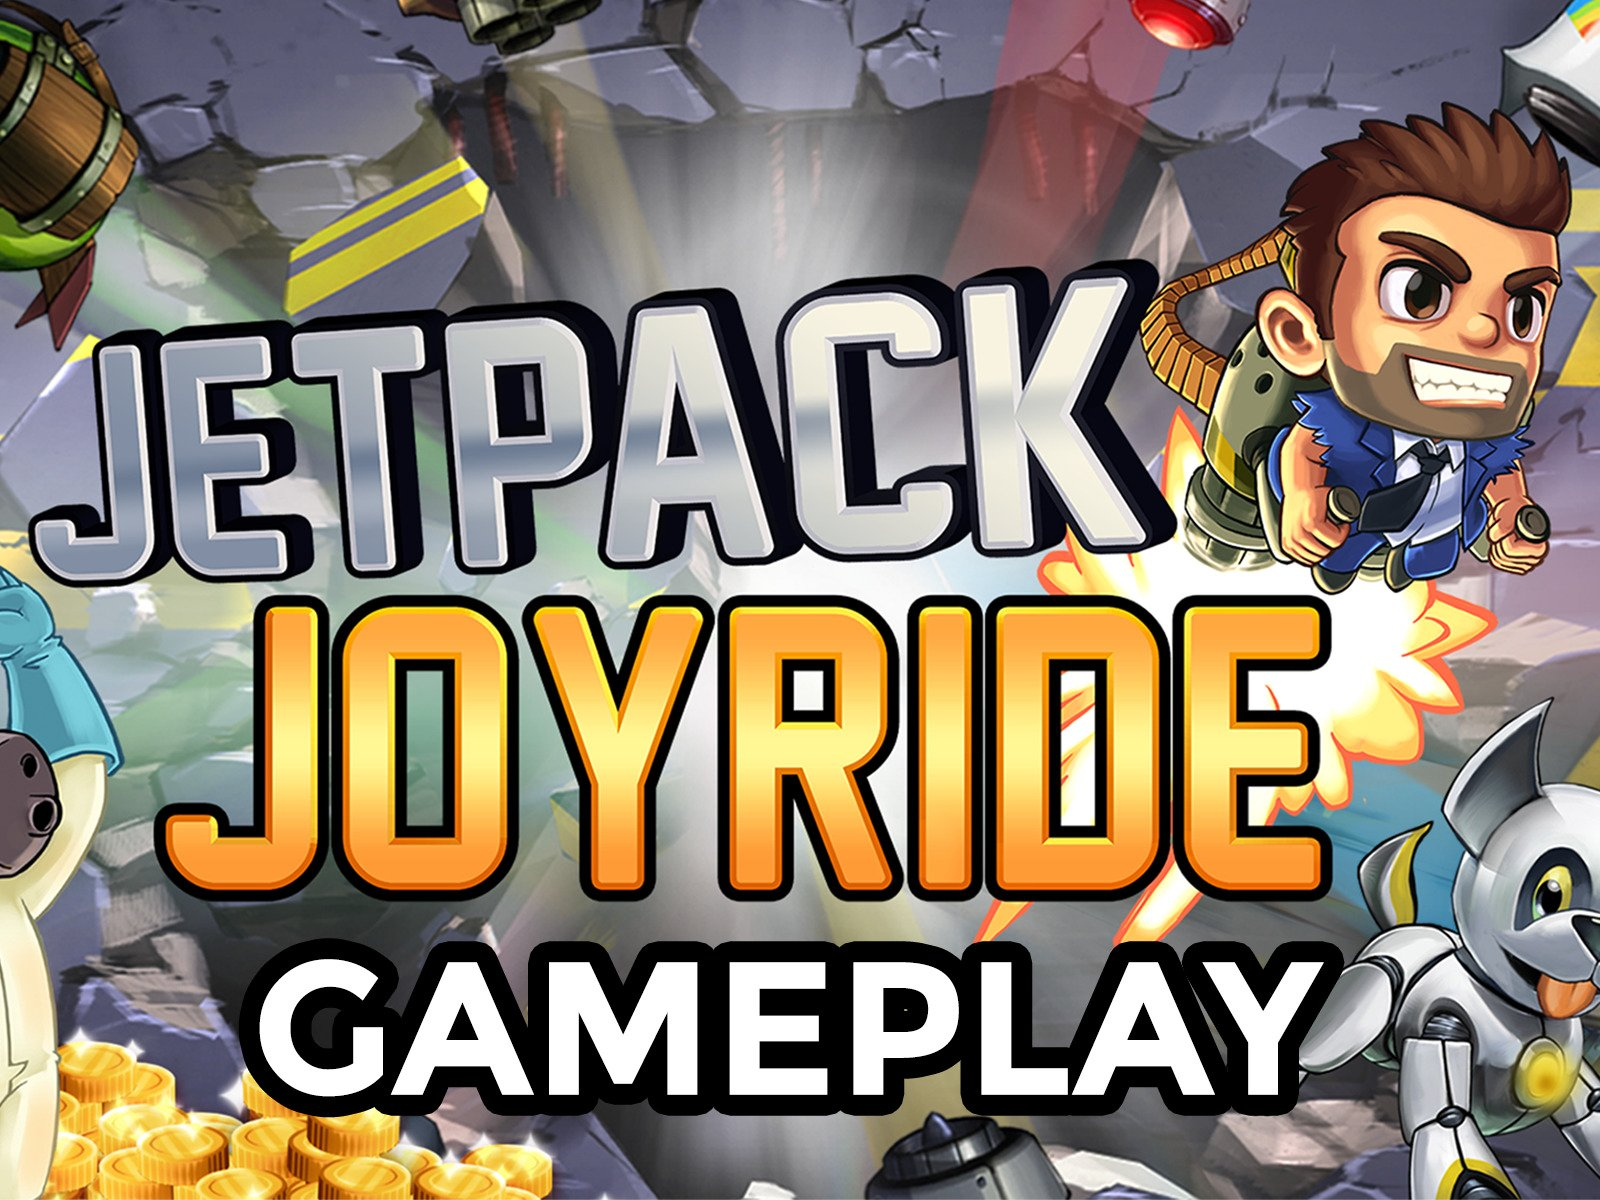 Clip: Jetpack Joyride Gameplay - Season 1